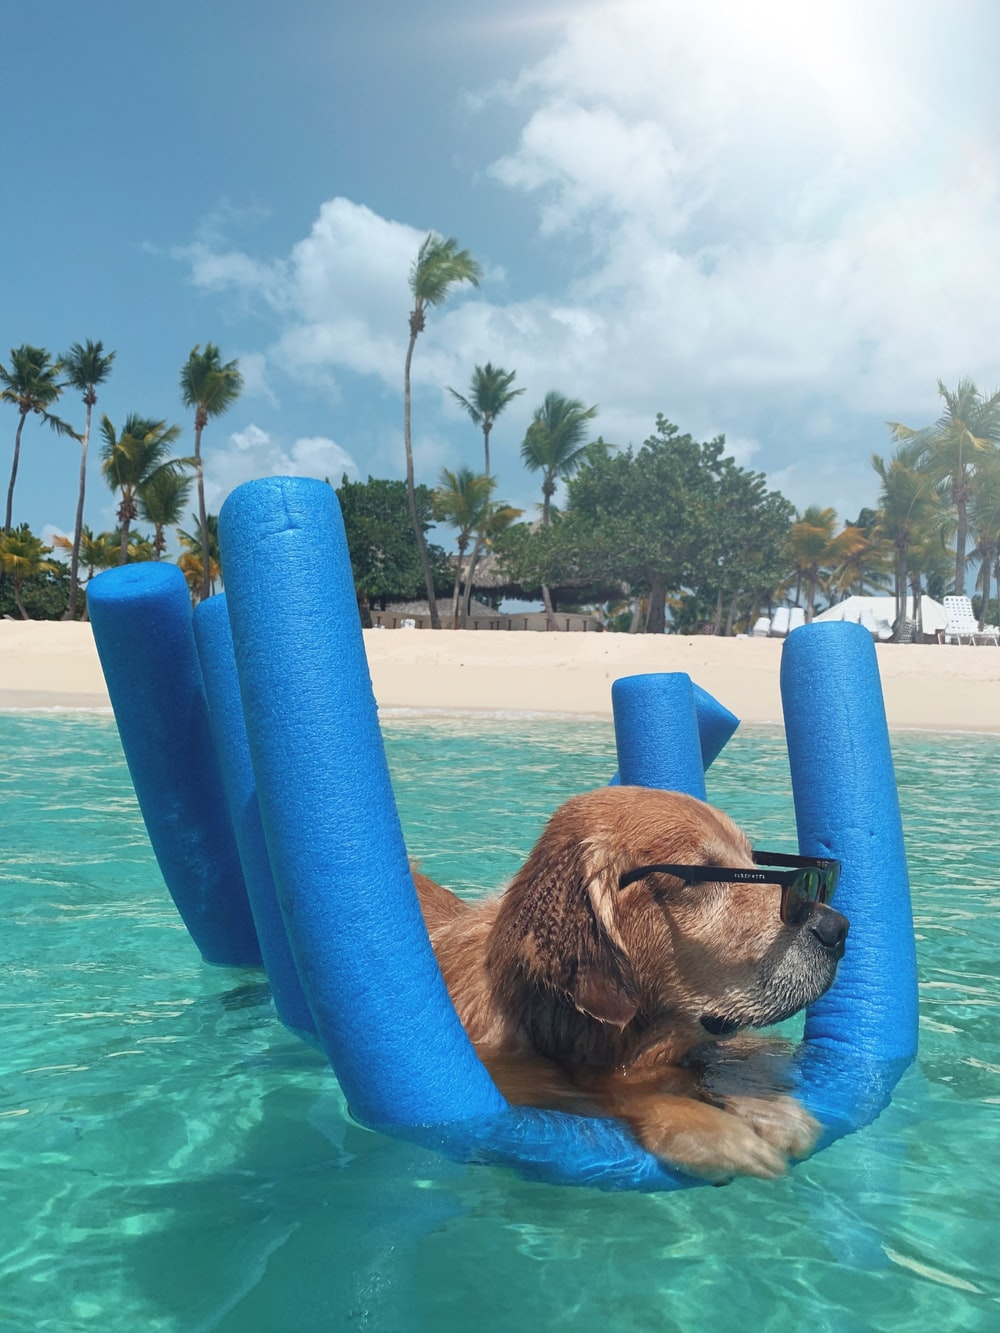 brown short coated dog in blue inflatable pool during daytime